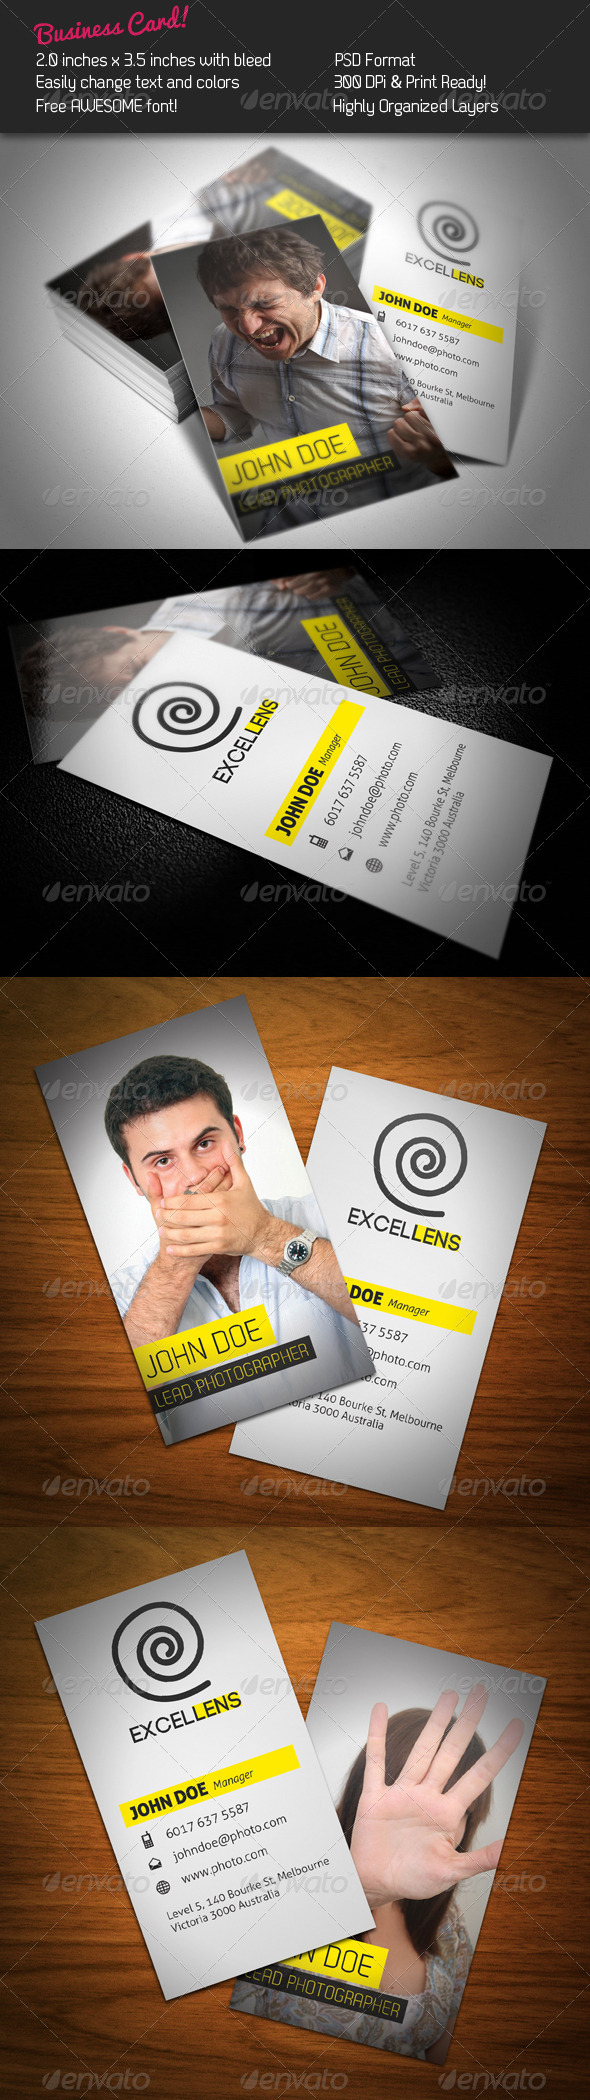 Excellens Business Card - Creative Business Cards